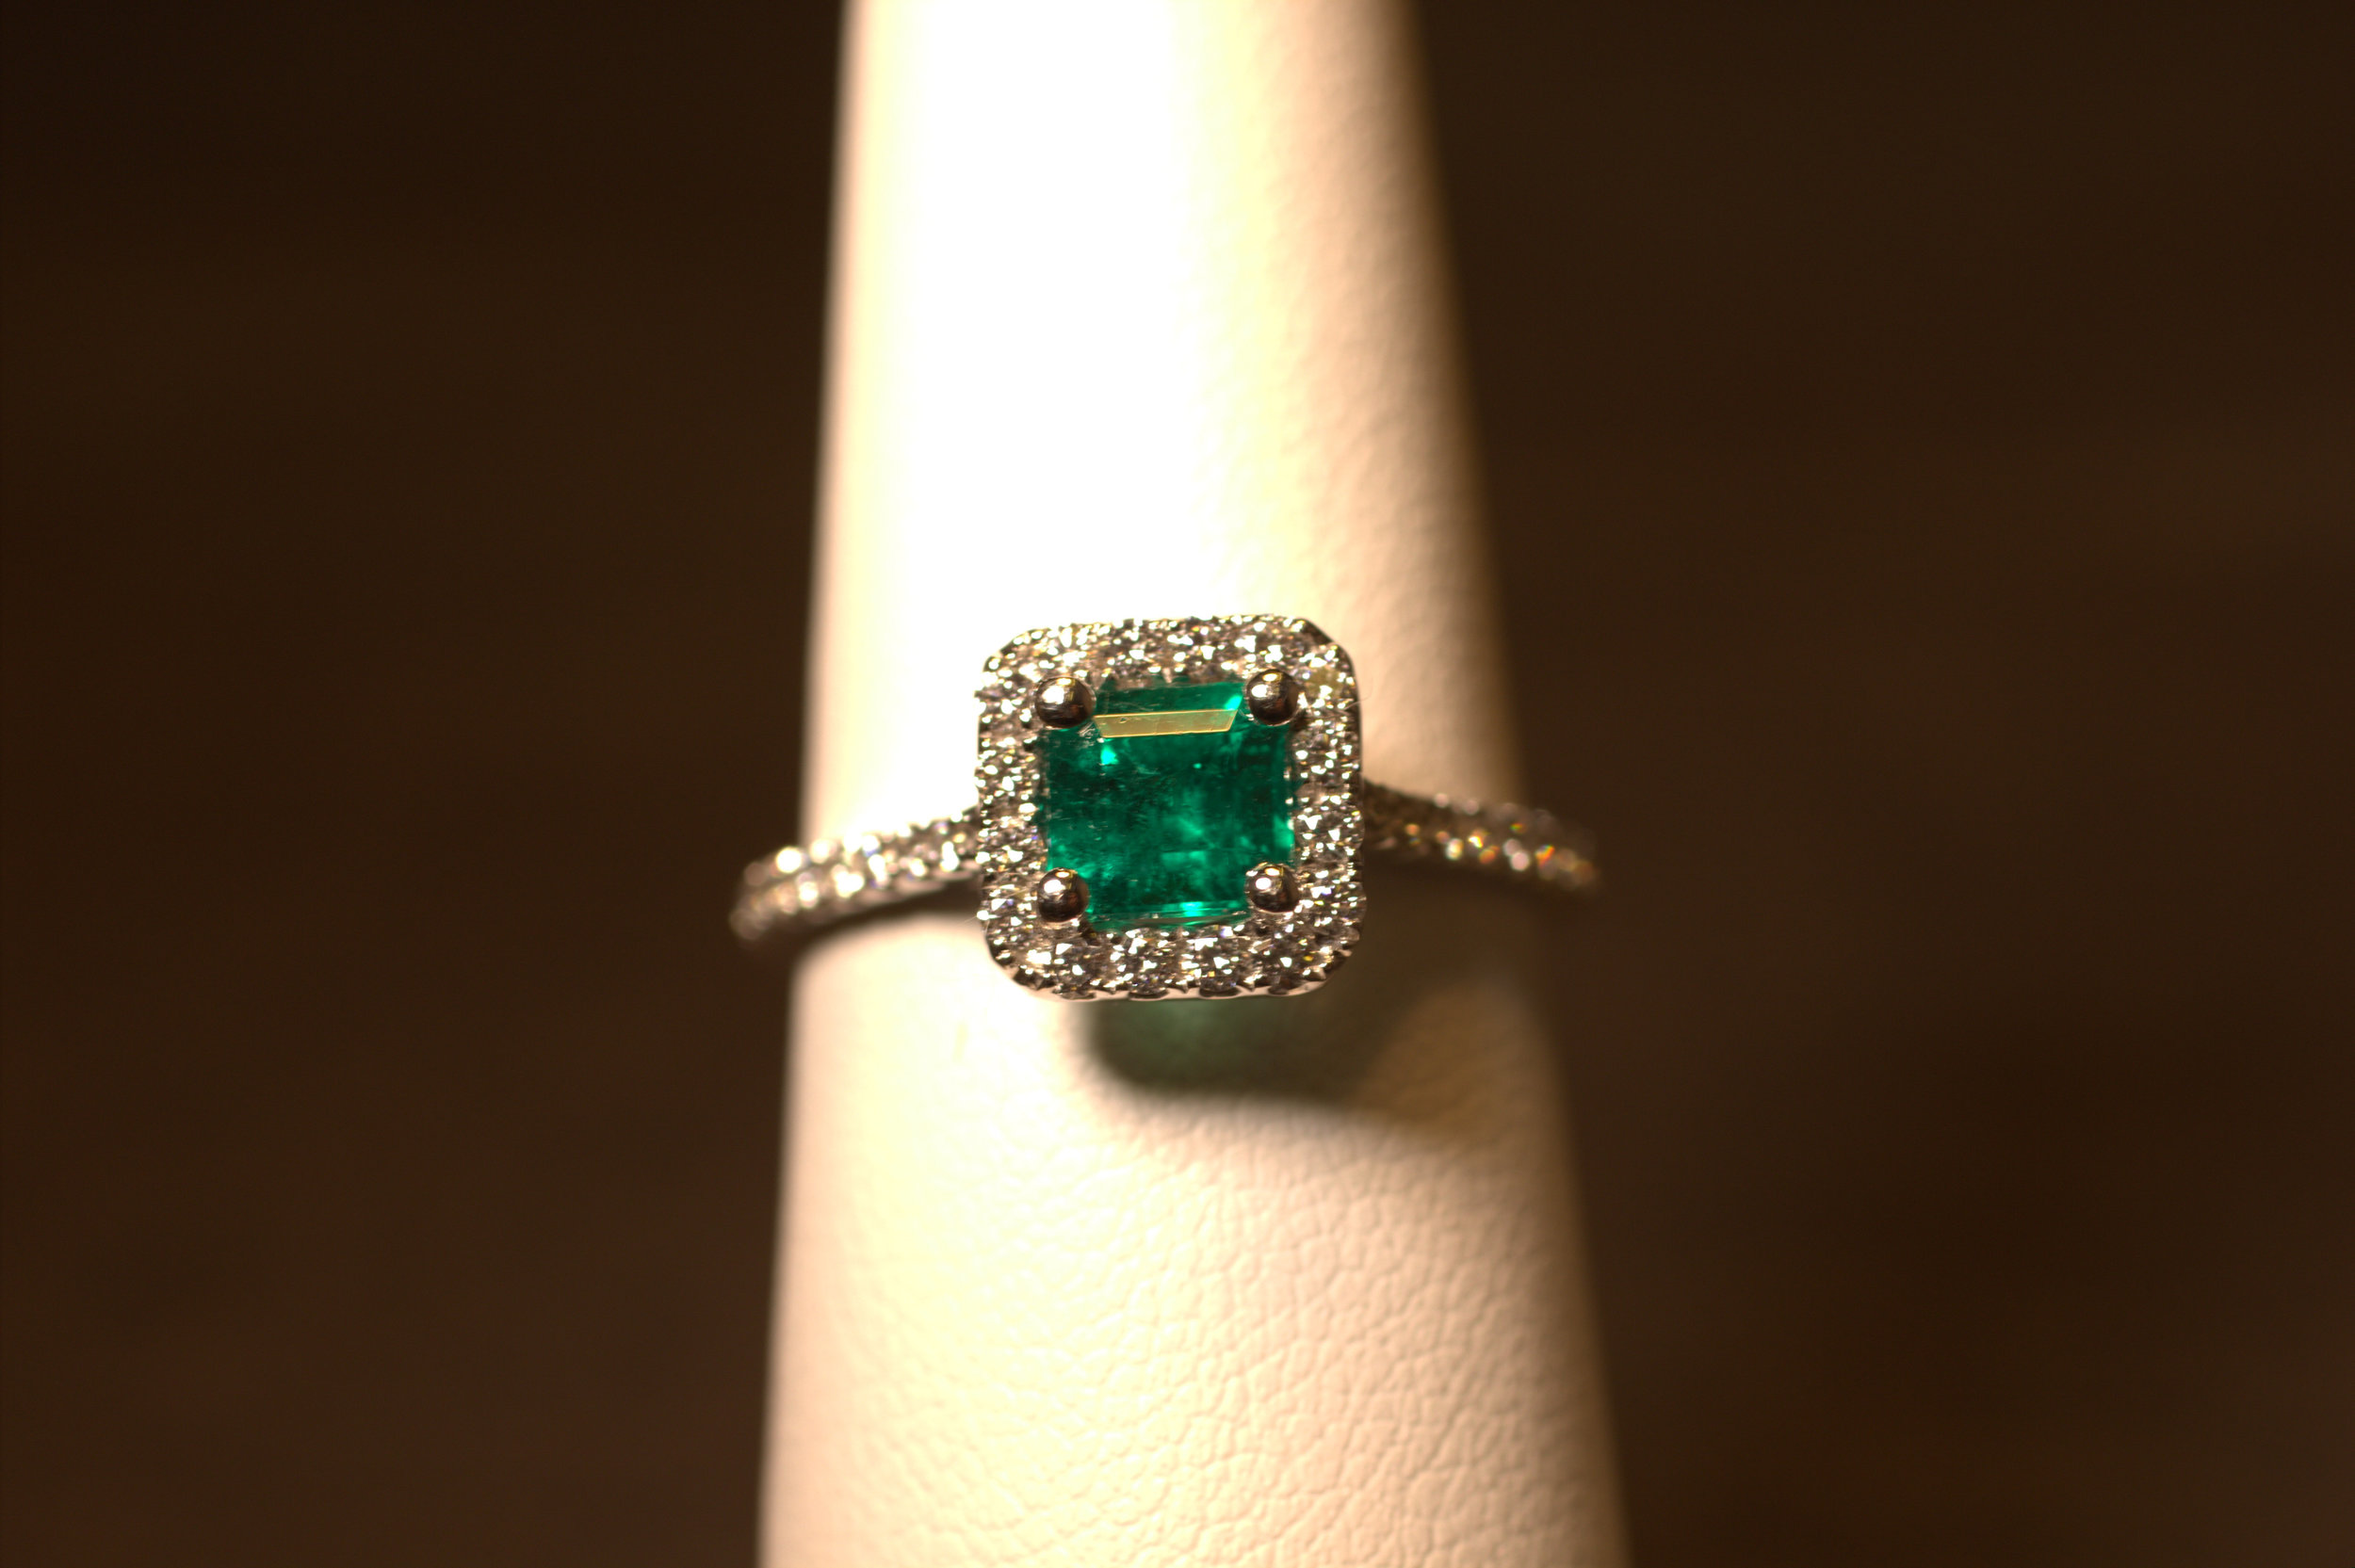 Platinum and diamond emerald ring. Square emerald cut emerald in a diamond halo with diamonds down the shank. Beautiful Columbian emerald displays rich green hues even throughout the stone. The emerald is set low into the halo to protect the gemstone. Great green color, the color of the year.  $6000